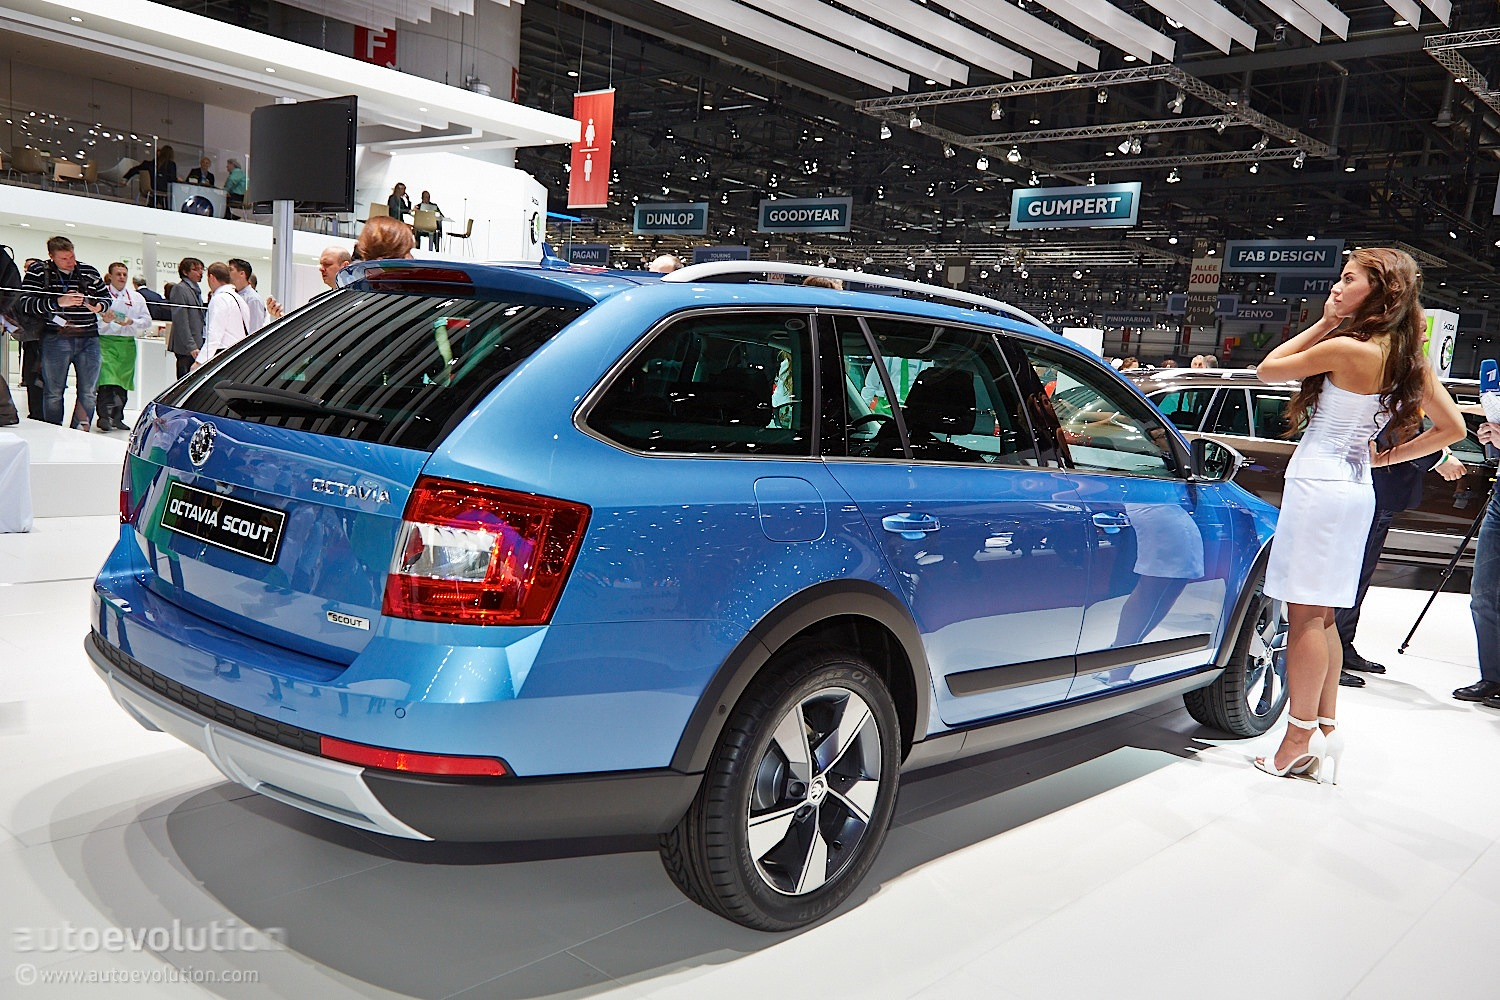 skoda octavia scout is an estate built for adventures at geneva 2014 live photos autoevolution. Black Bedroom Furniture Sets. Home Design Ideas